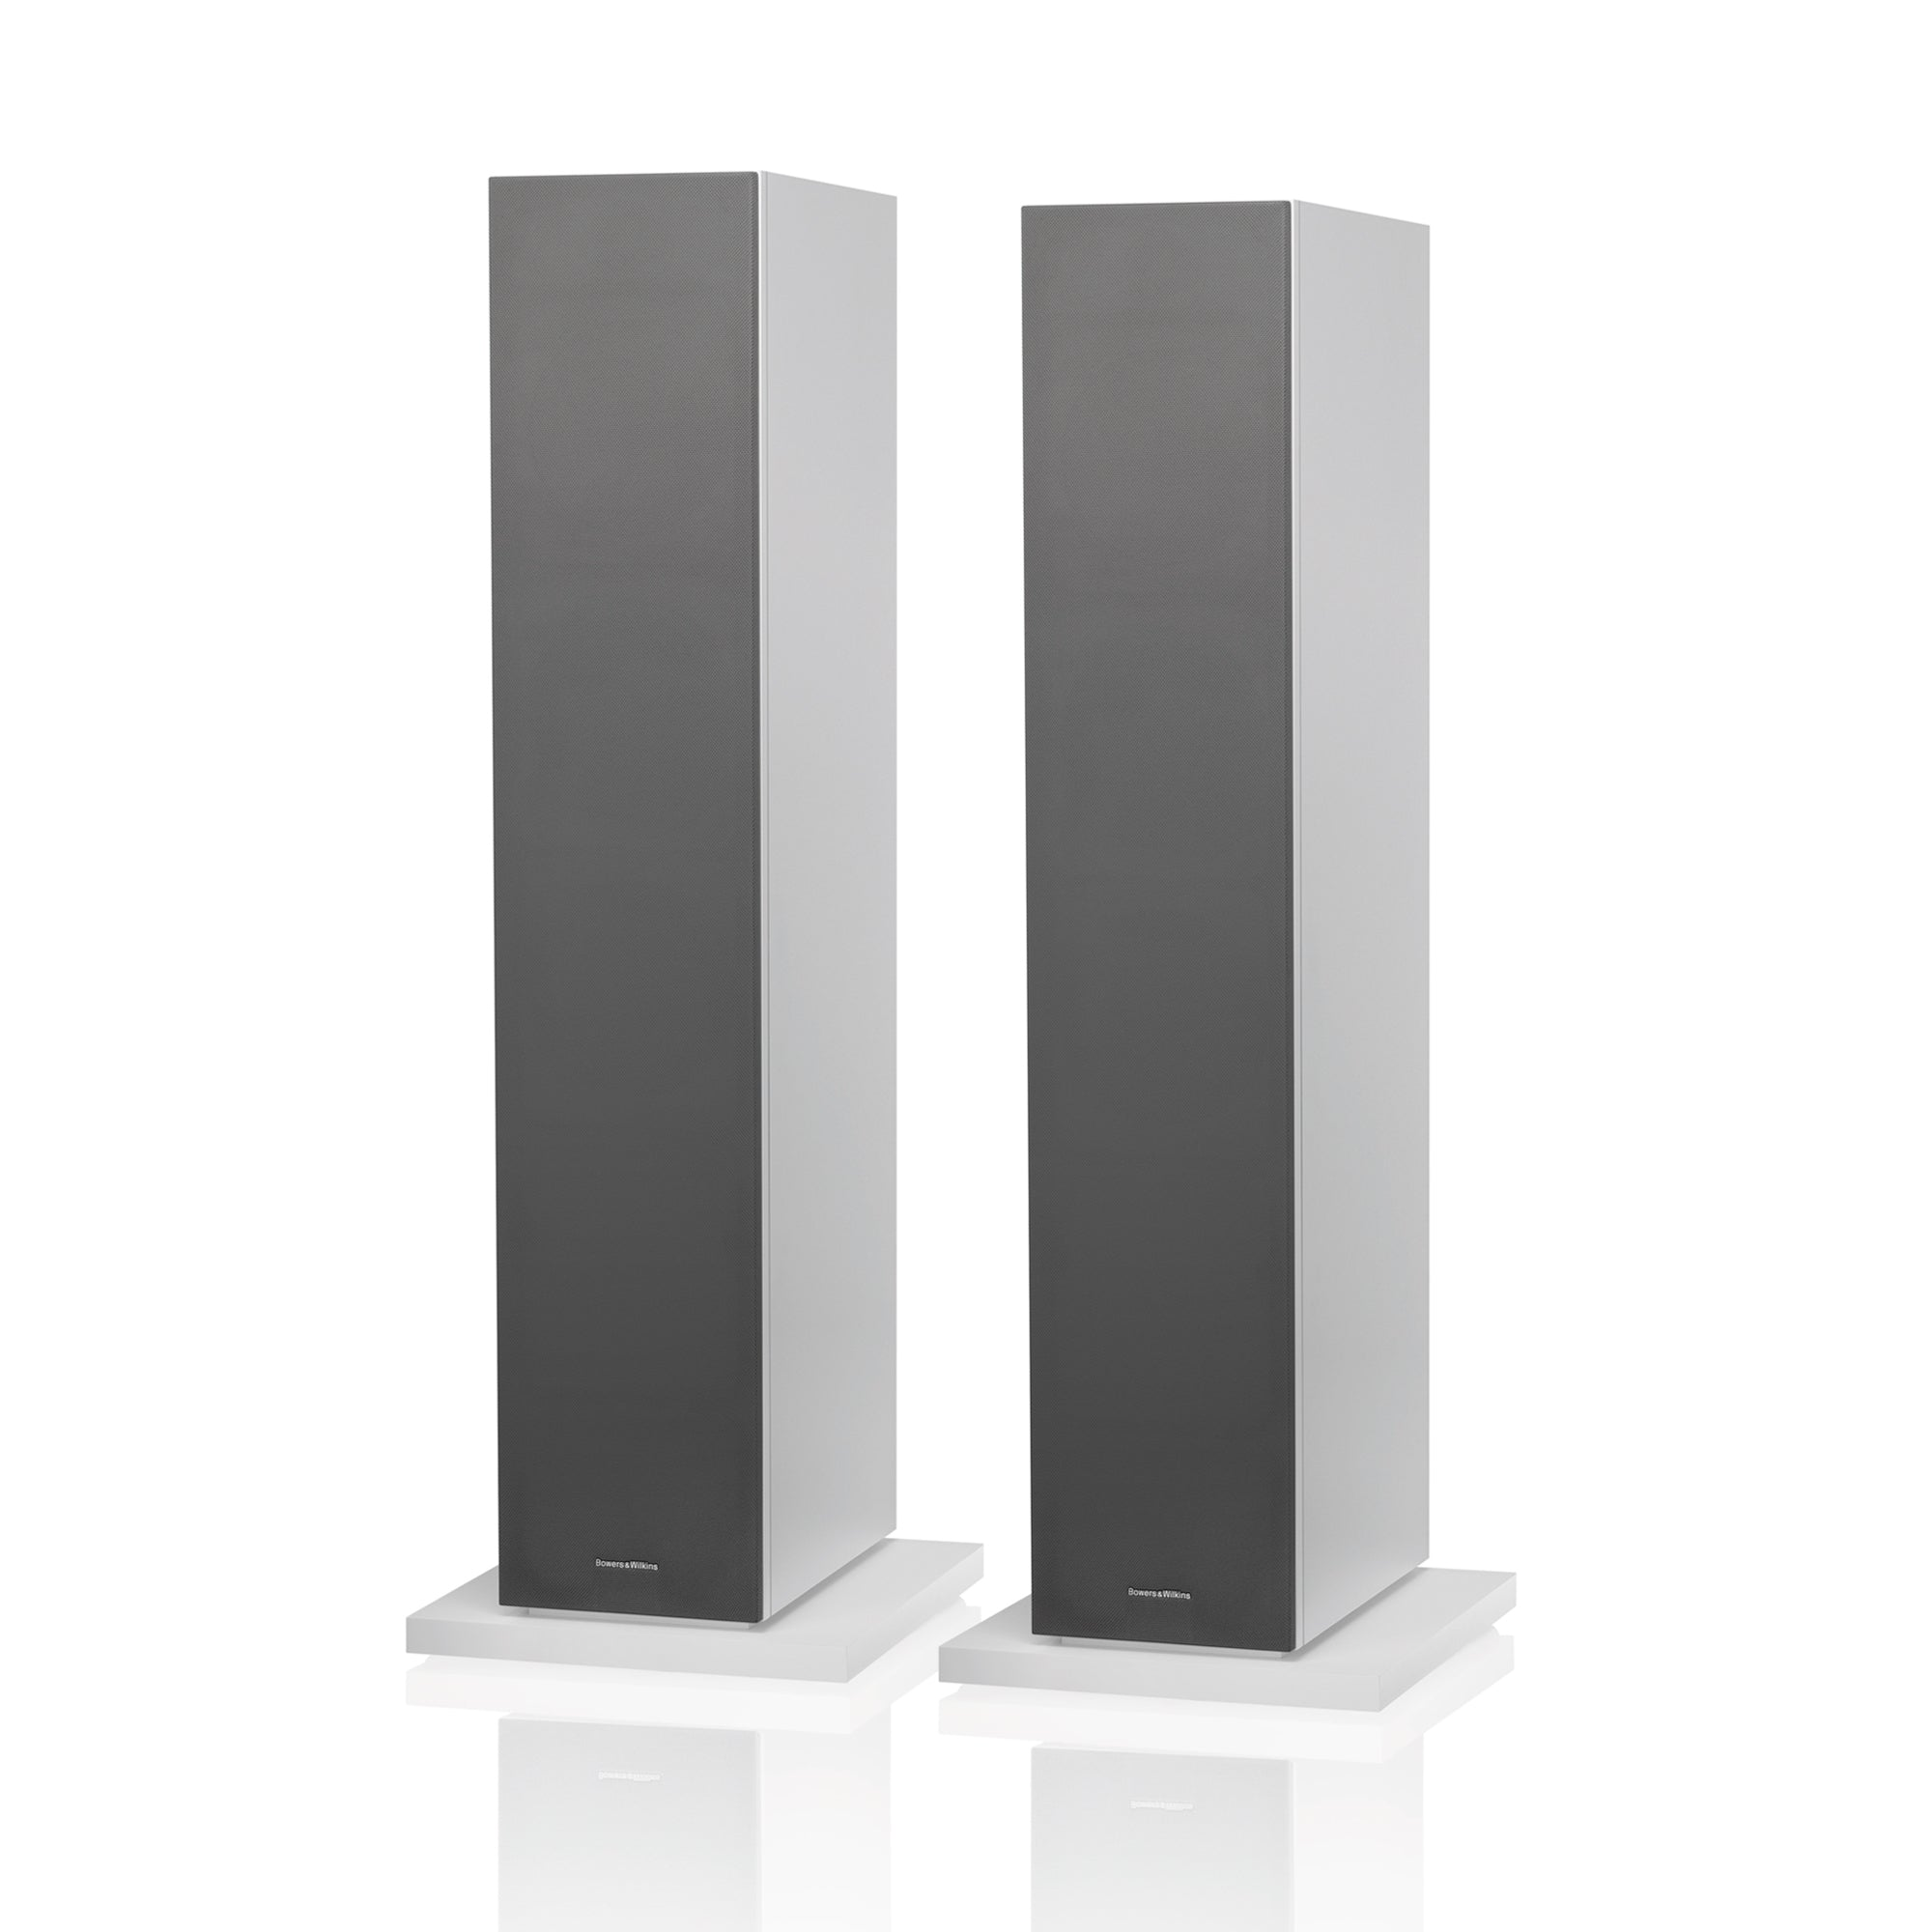 Bowers & Wilkins 603 S2 Floorstanding Speakers (Pair)